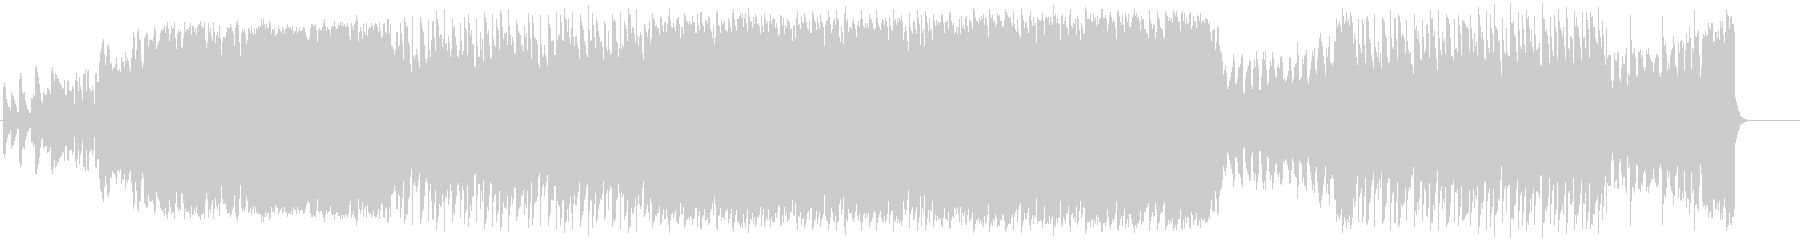 Dramatic and humble pop's unreproduced waveform